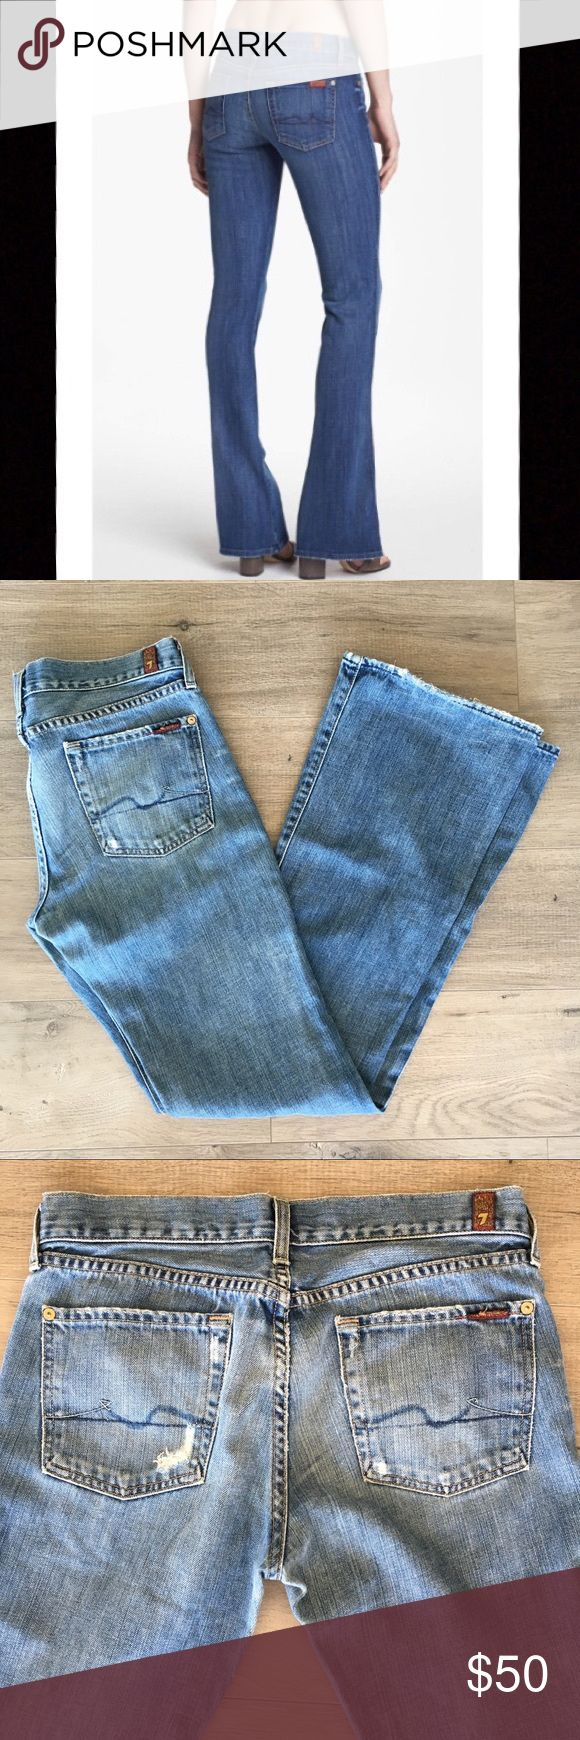 7 FOR ALL MANKIND ~ flare leg blue jeans size 29 7 FOR ALL MANKIND ~   7 FOR ALL MANKIND brand  Blue jeans  Women's jeans  Medium wash  Flare leg  Size 29  Pre owned  Great jeans for fall 7 For All Mankind Jeans Flare & Wide Leg